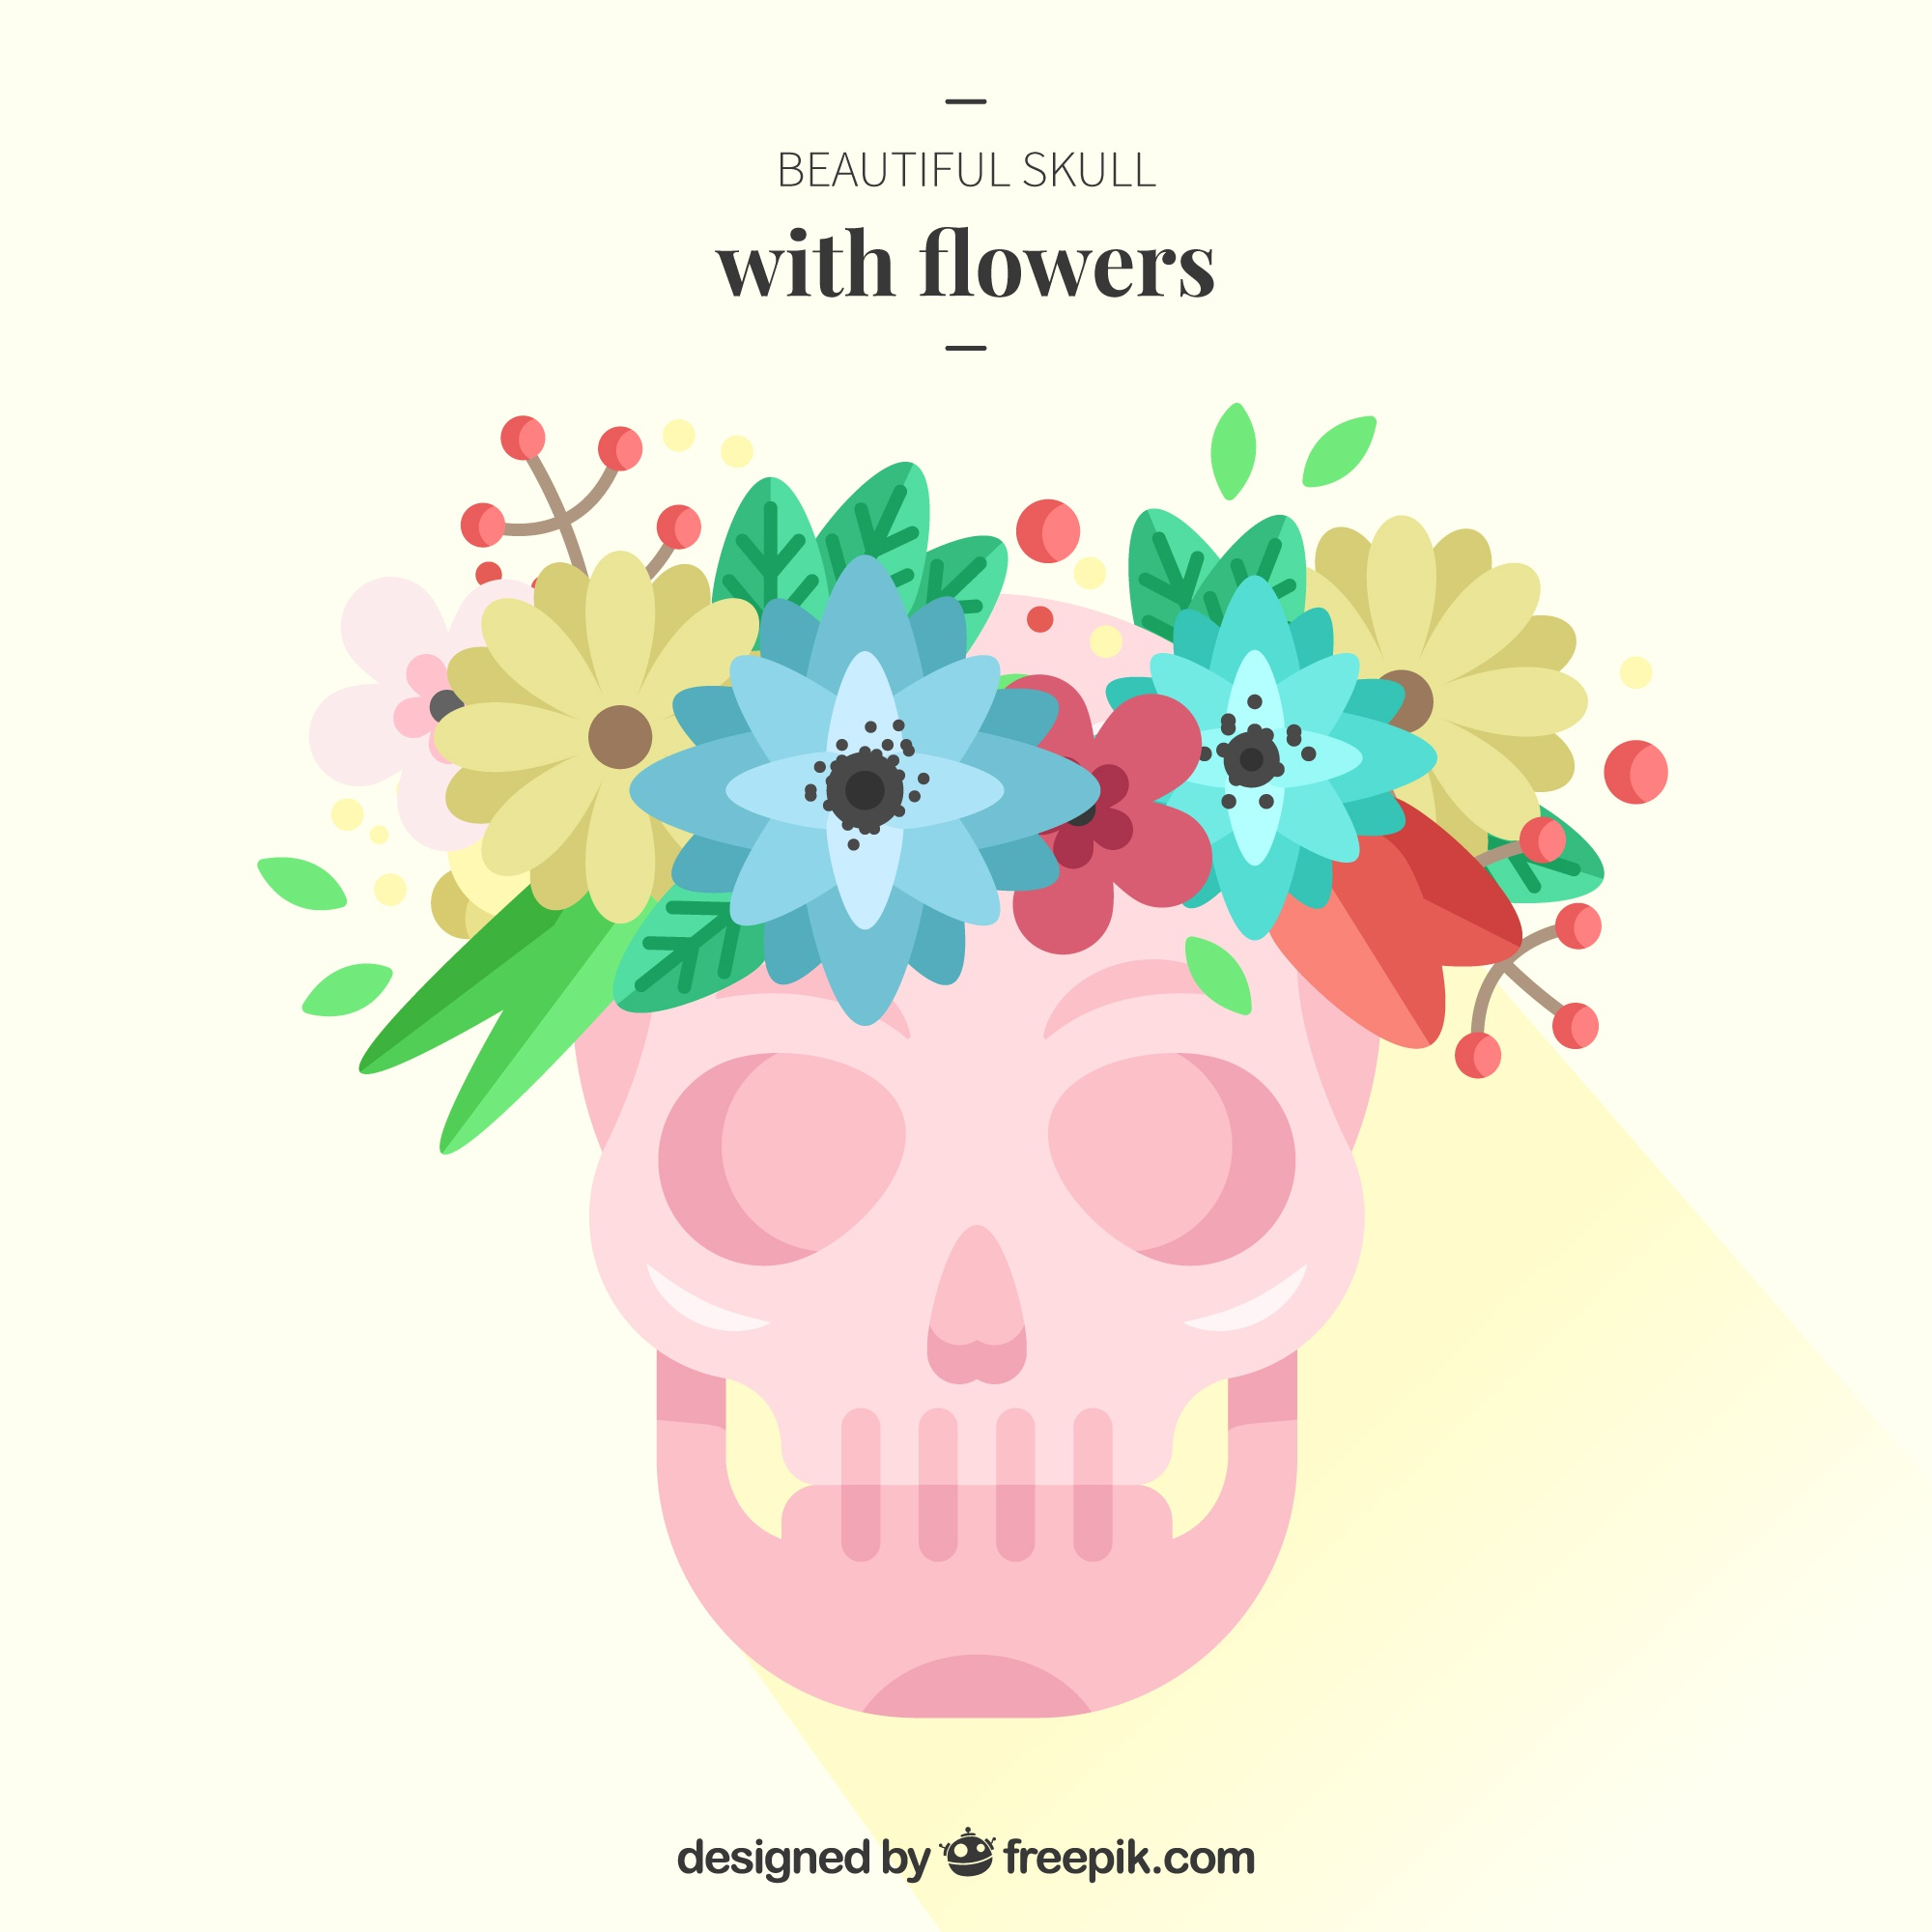 Skull background with colorful flowers